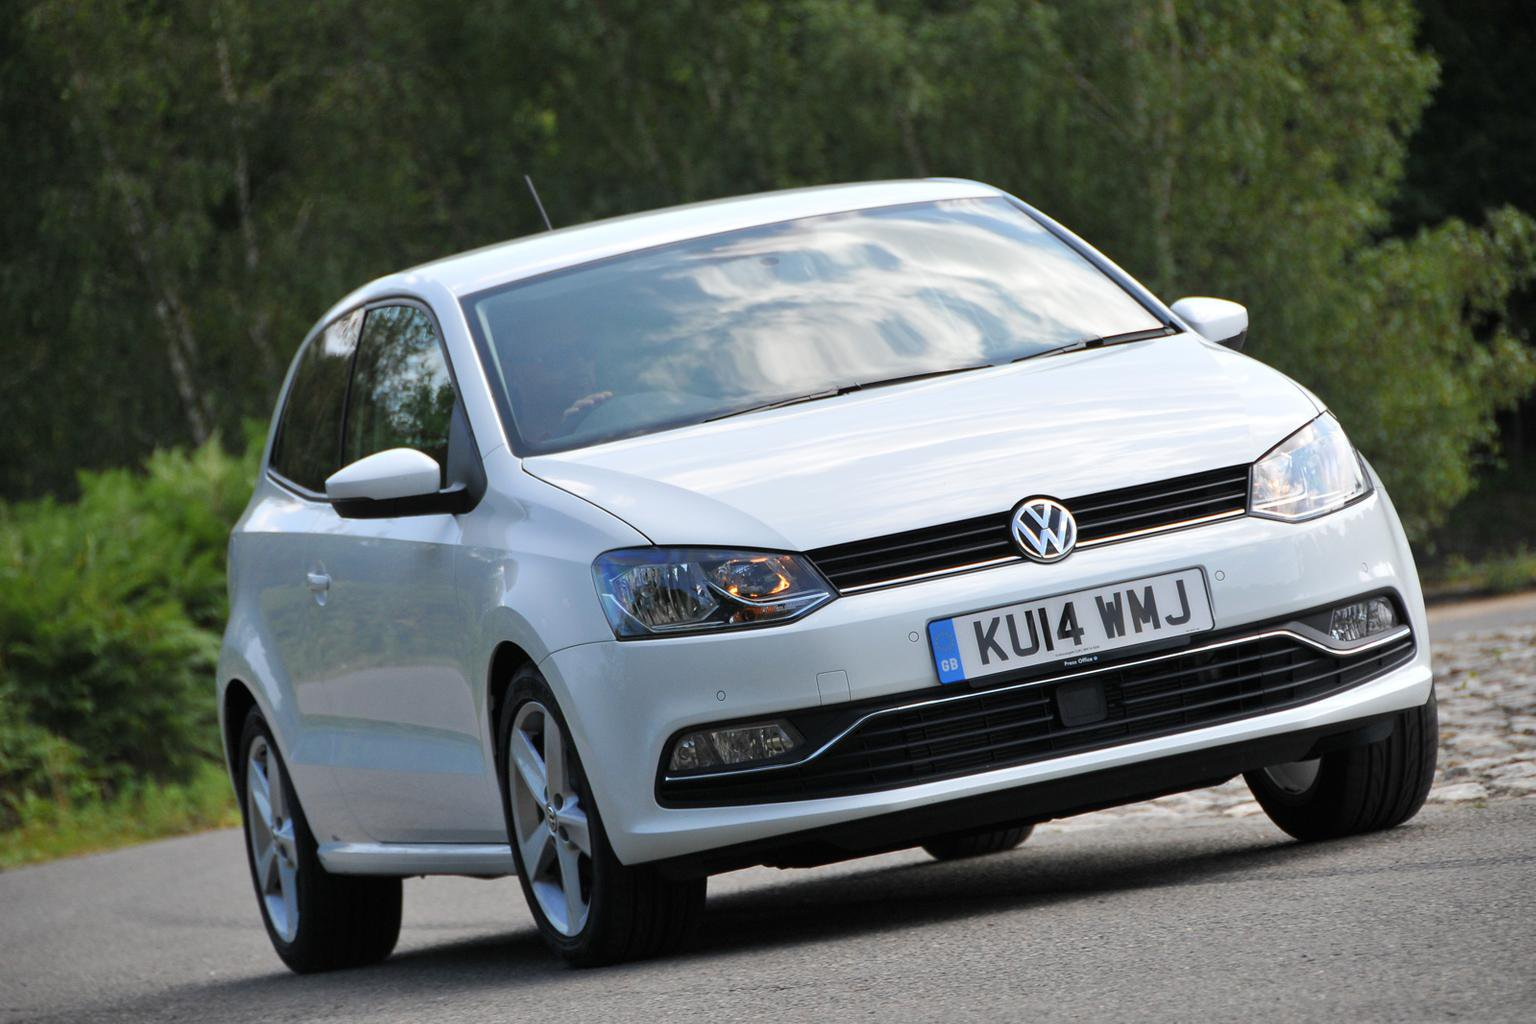 2014 Volkswagen Polo 1.4 TDI review